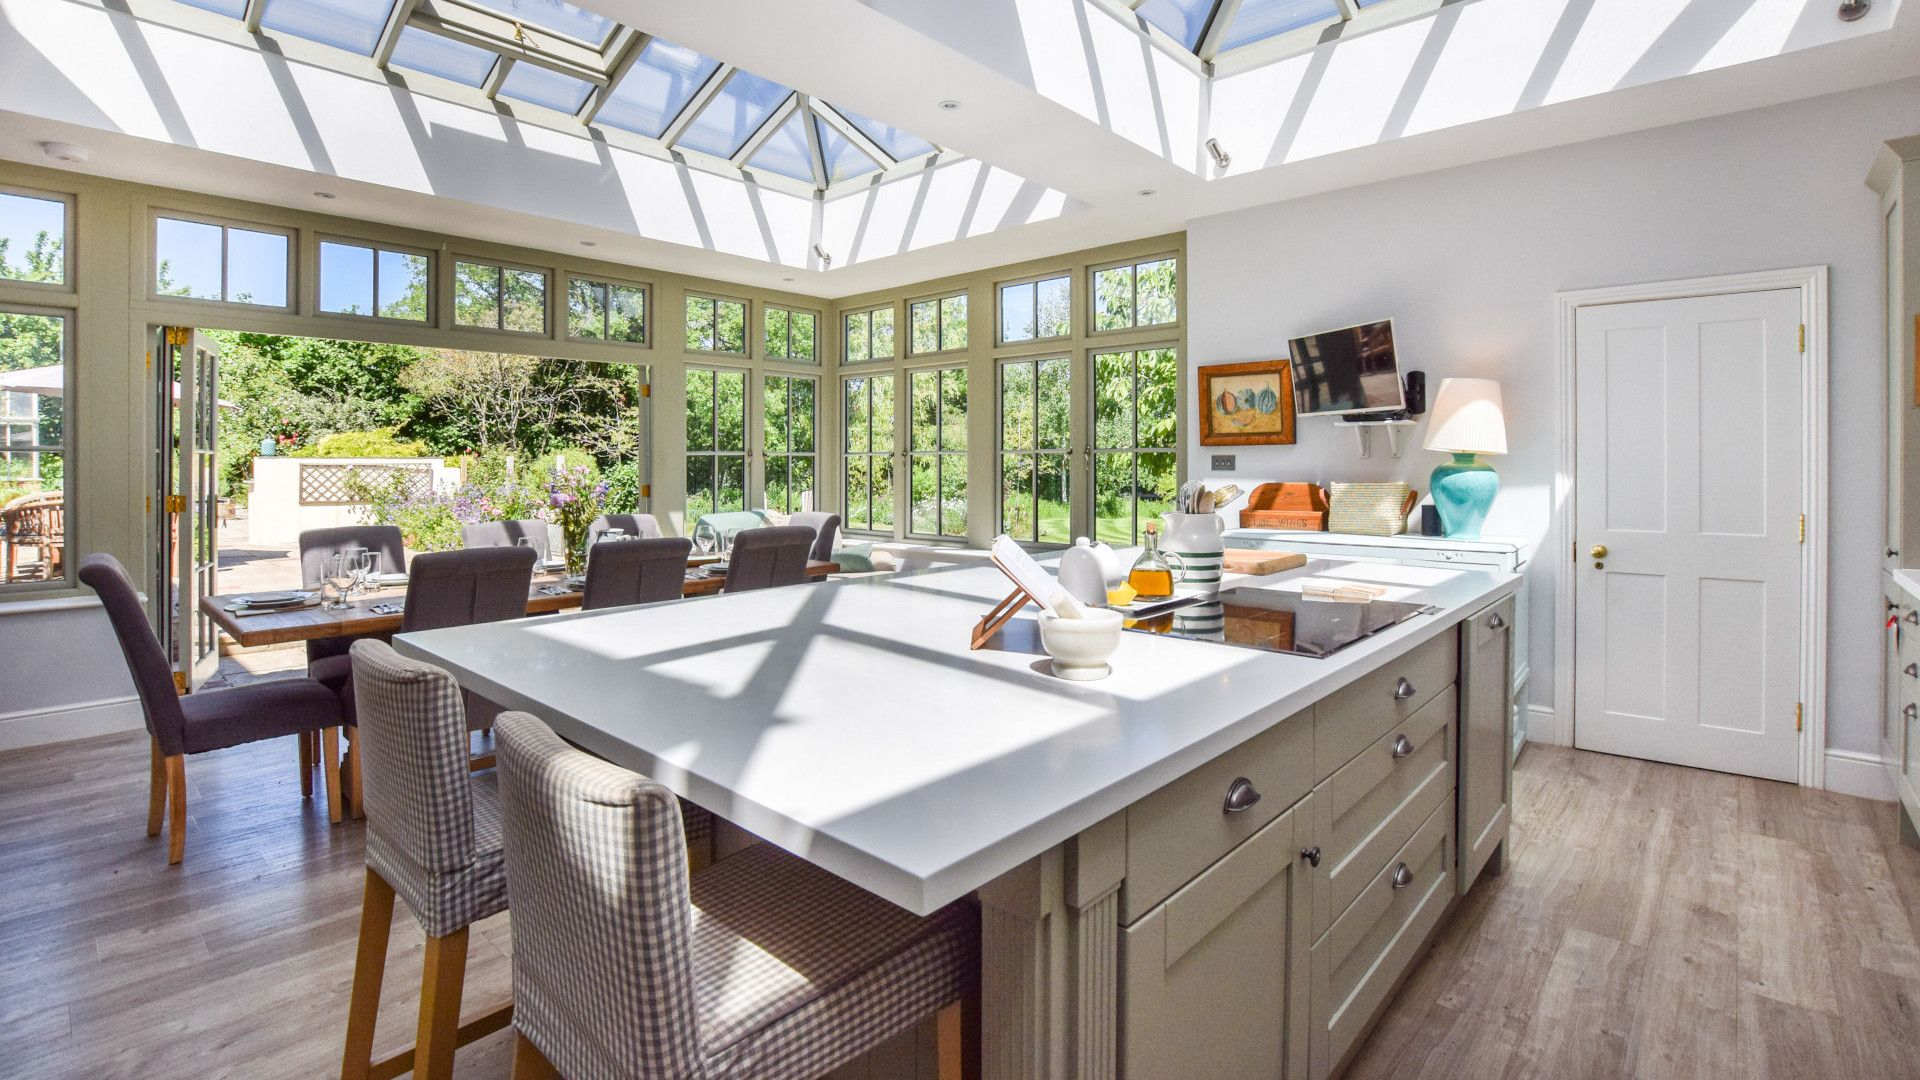 Kitchen with central island, Old Manse, Bolthole Retreats